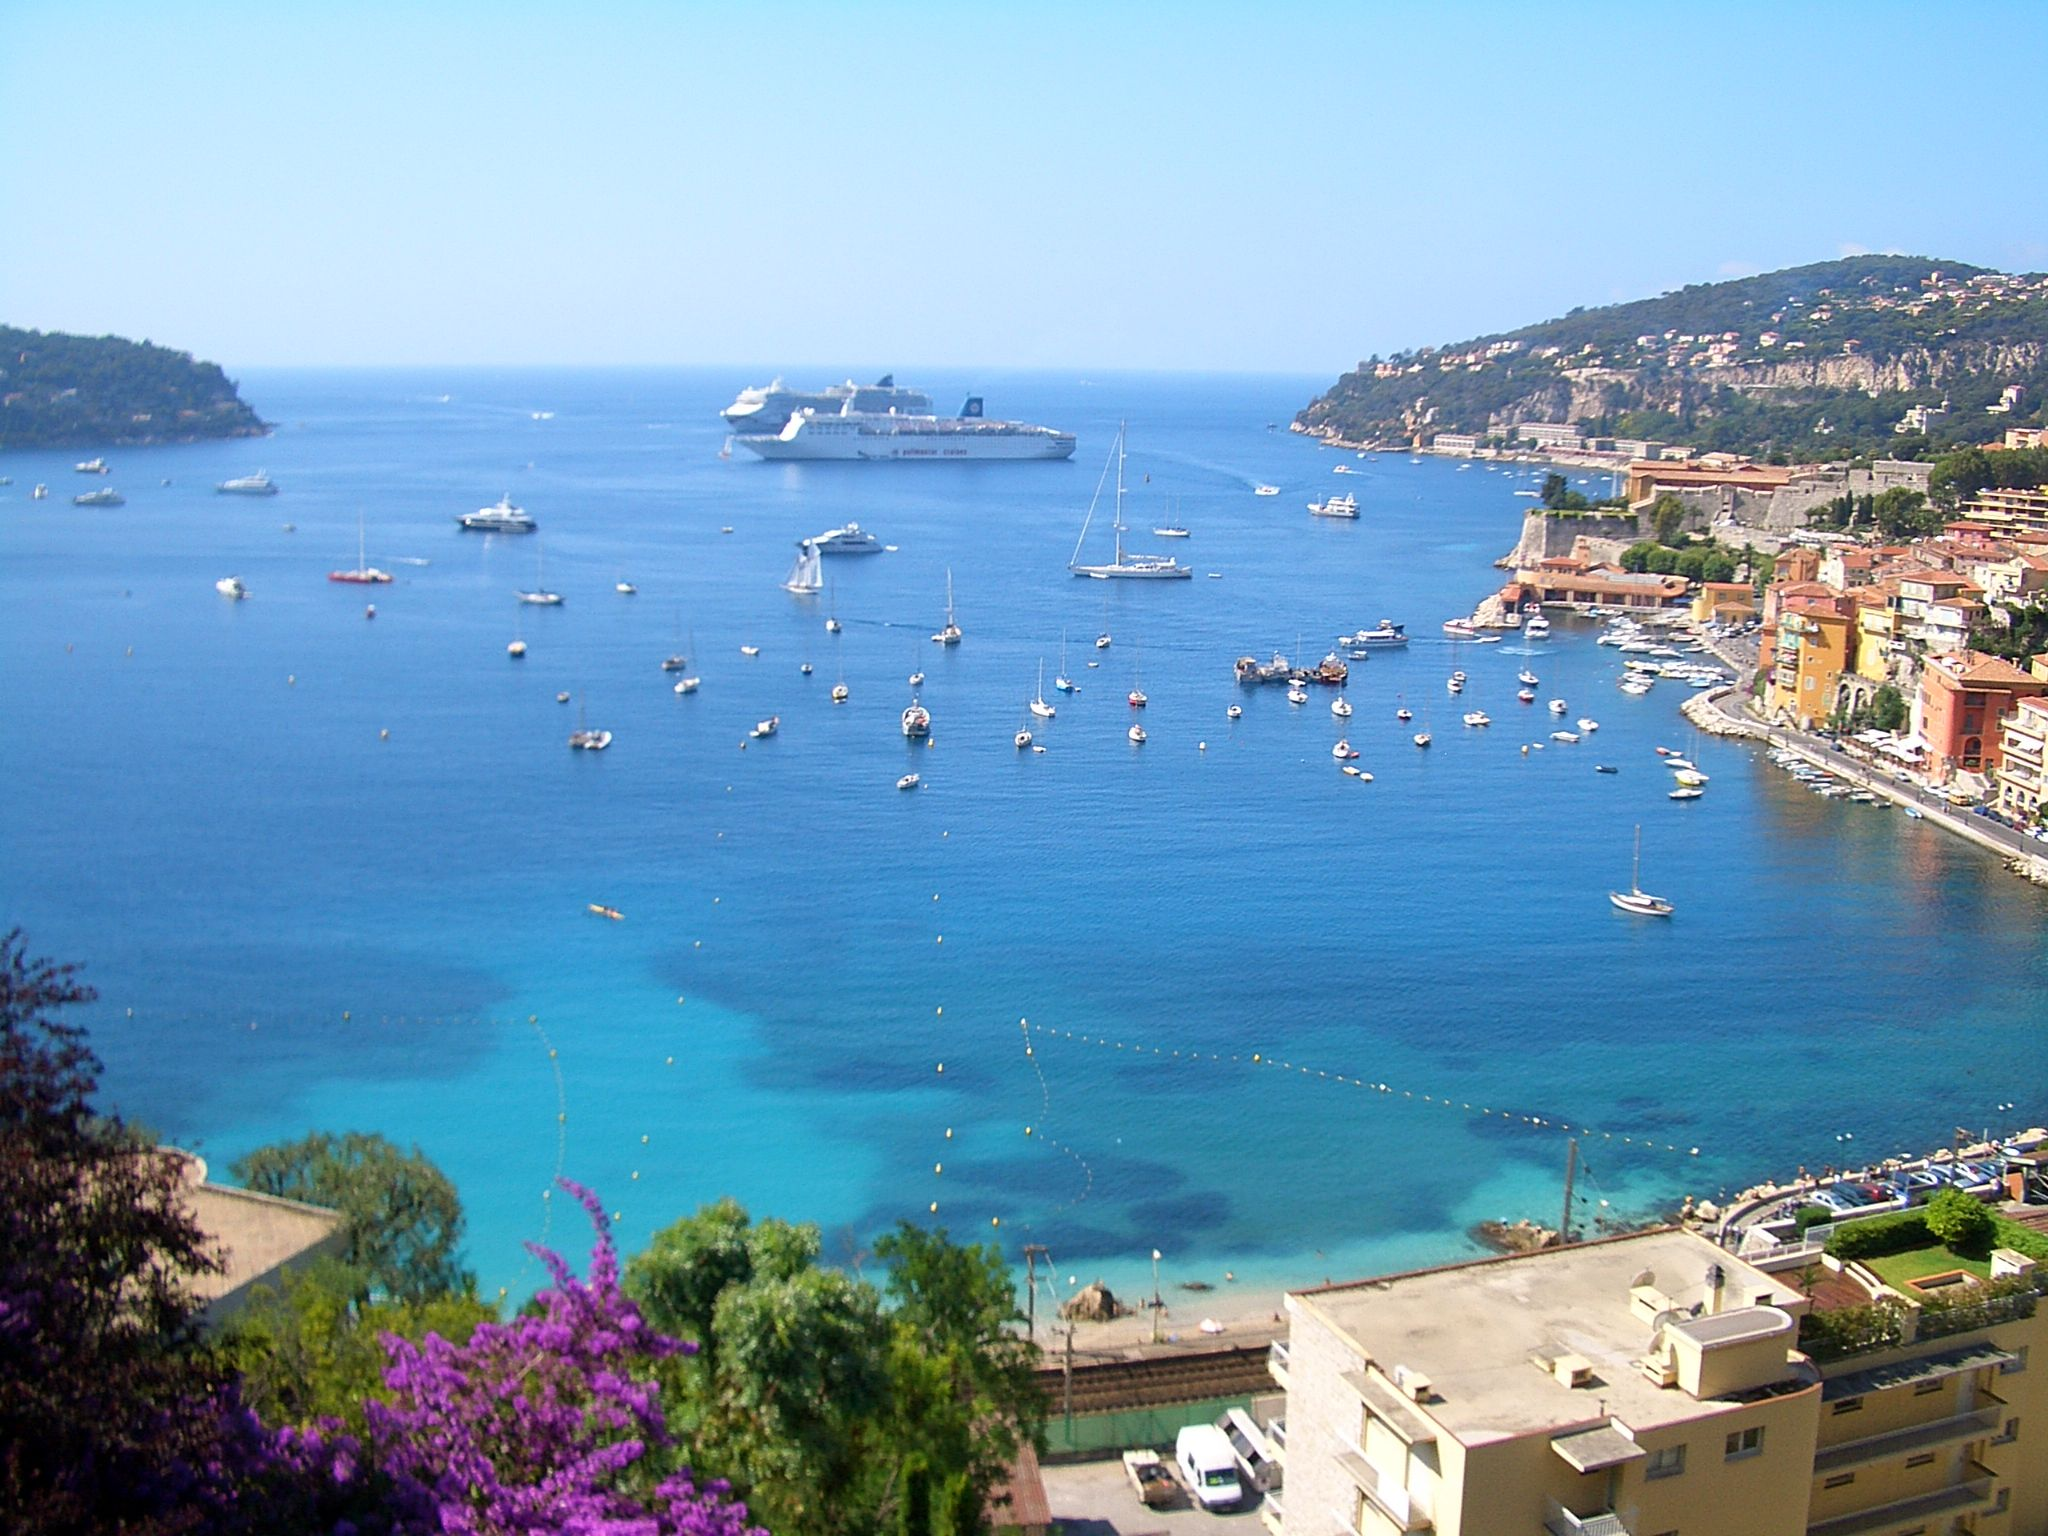 The beautiful city of Villefranche-sur-Mer is a treasure of the French Riviera